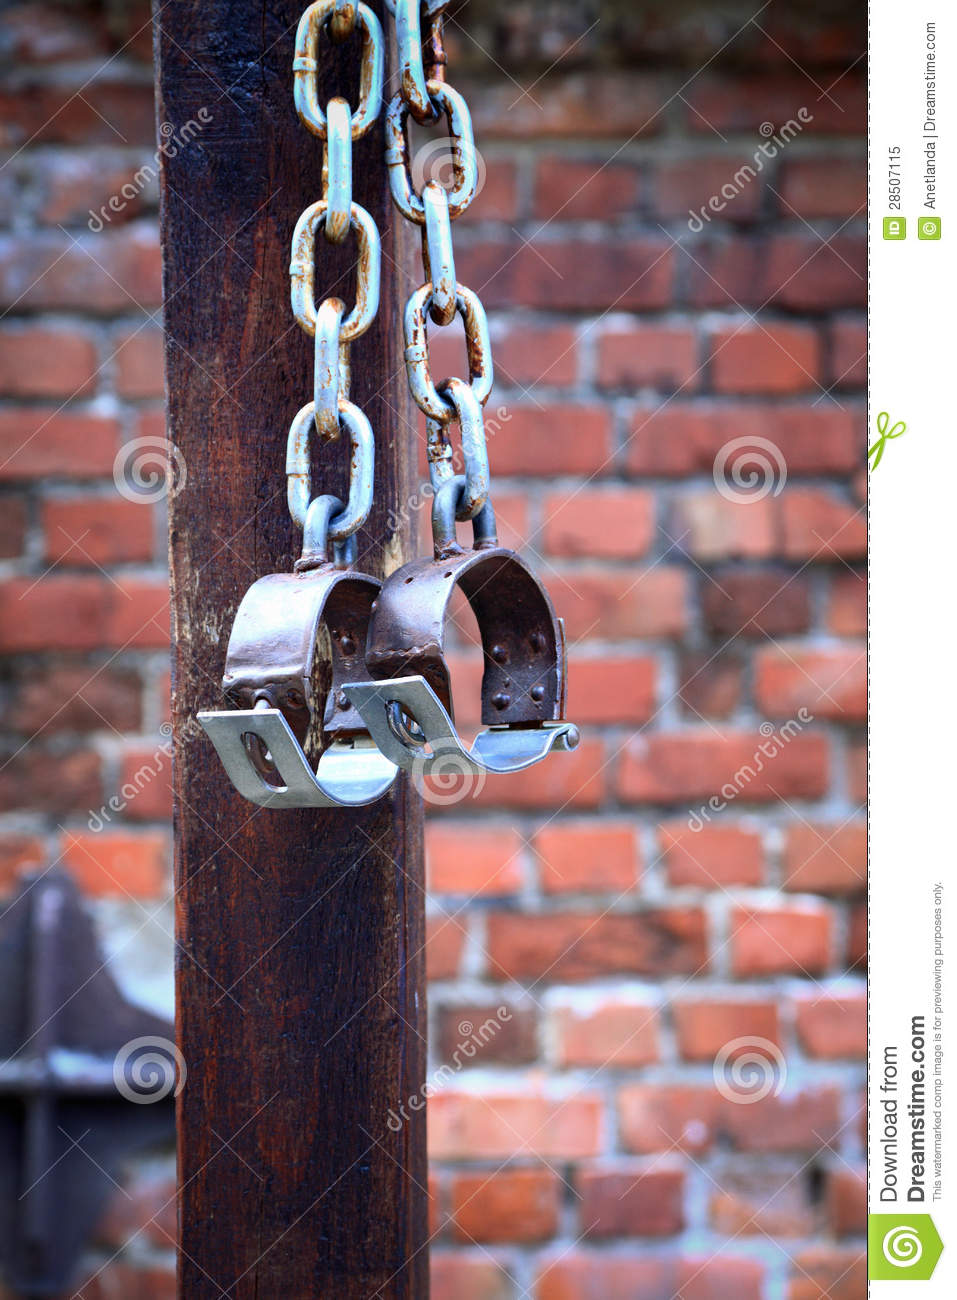 Fetters Manacles On Brick Background Royalty Free Stock